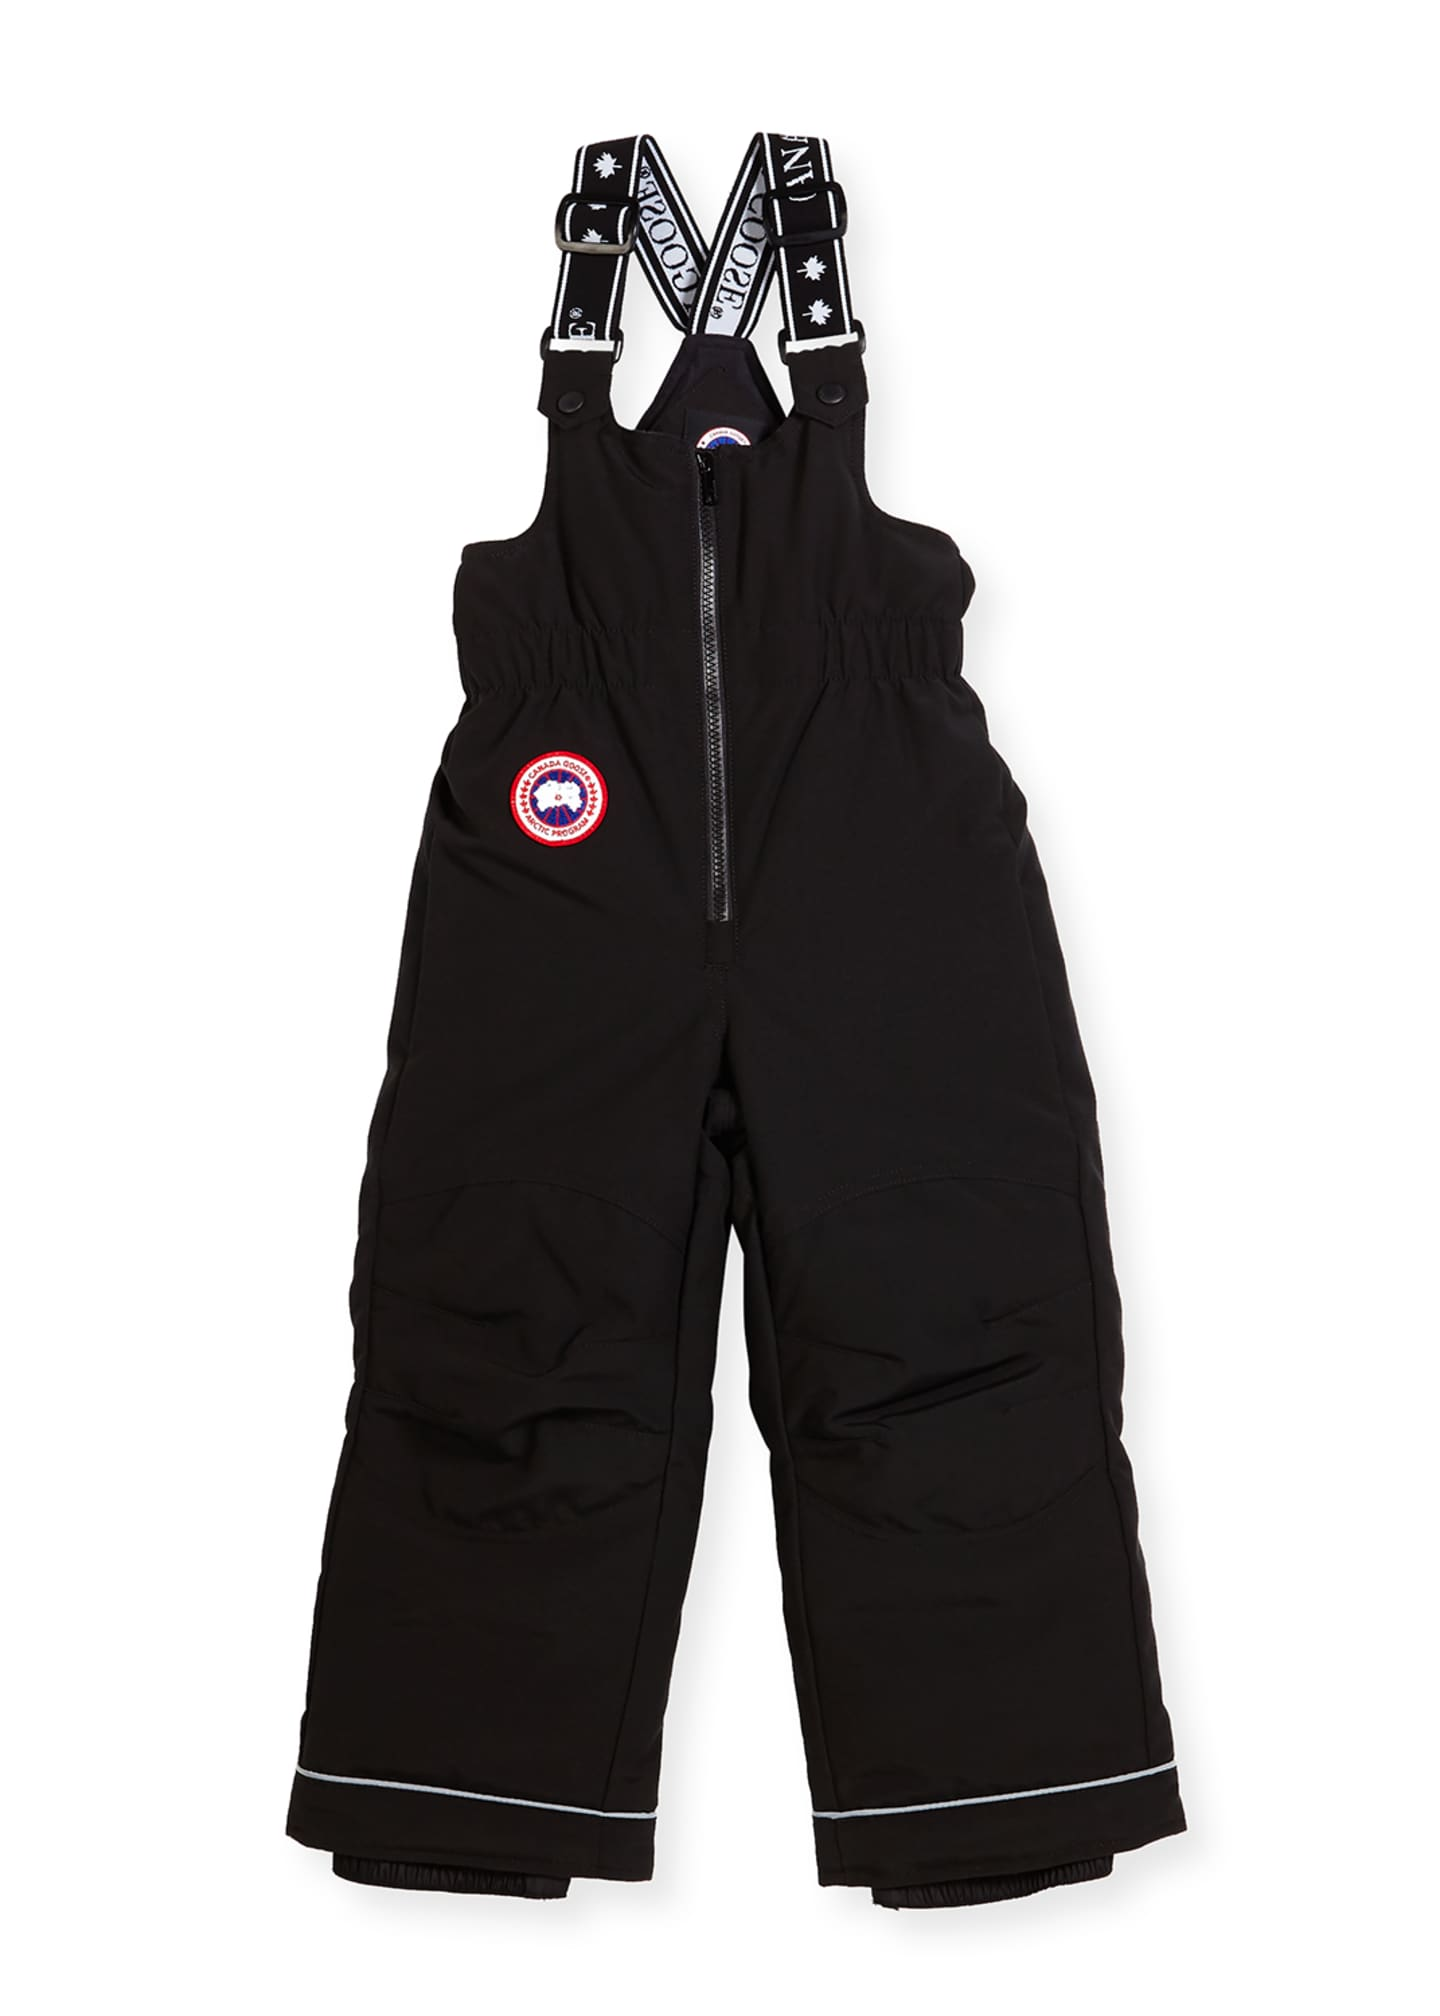 Canada Goose Thunder Waterproof Winter Pants, Black, Kids'